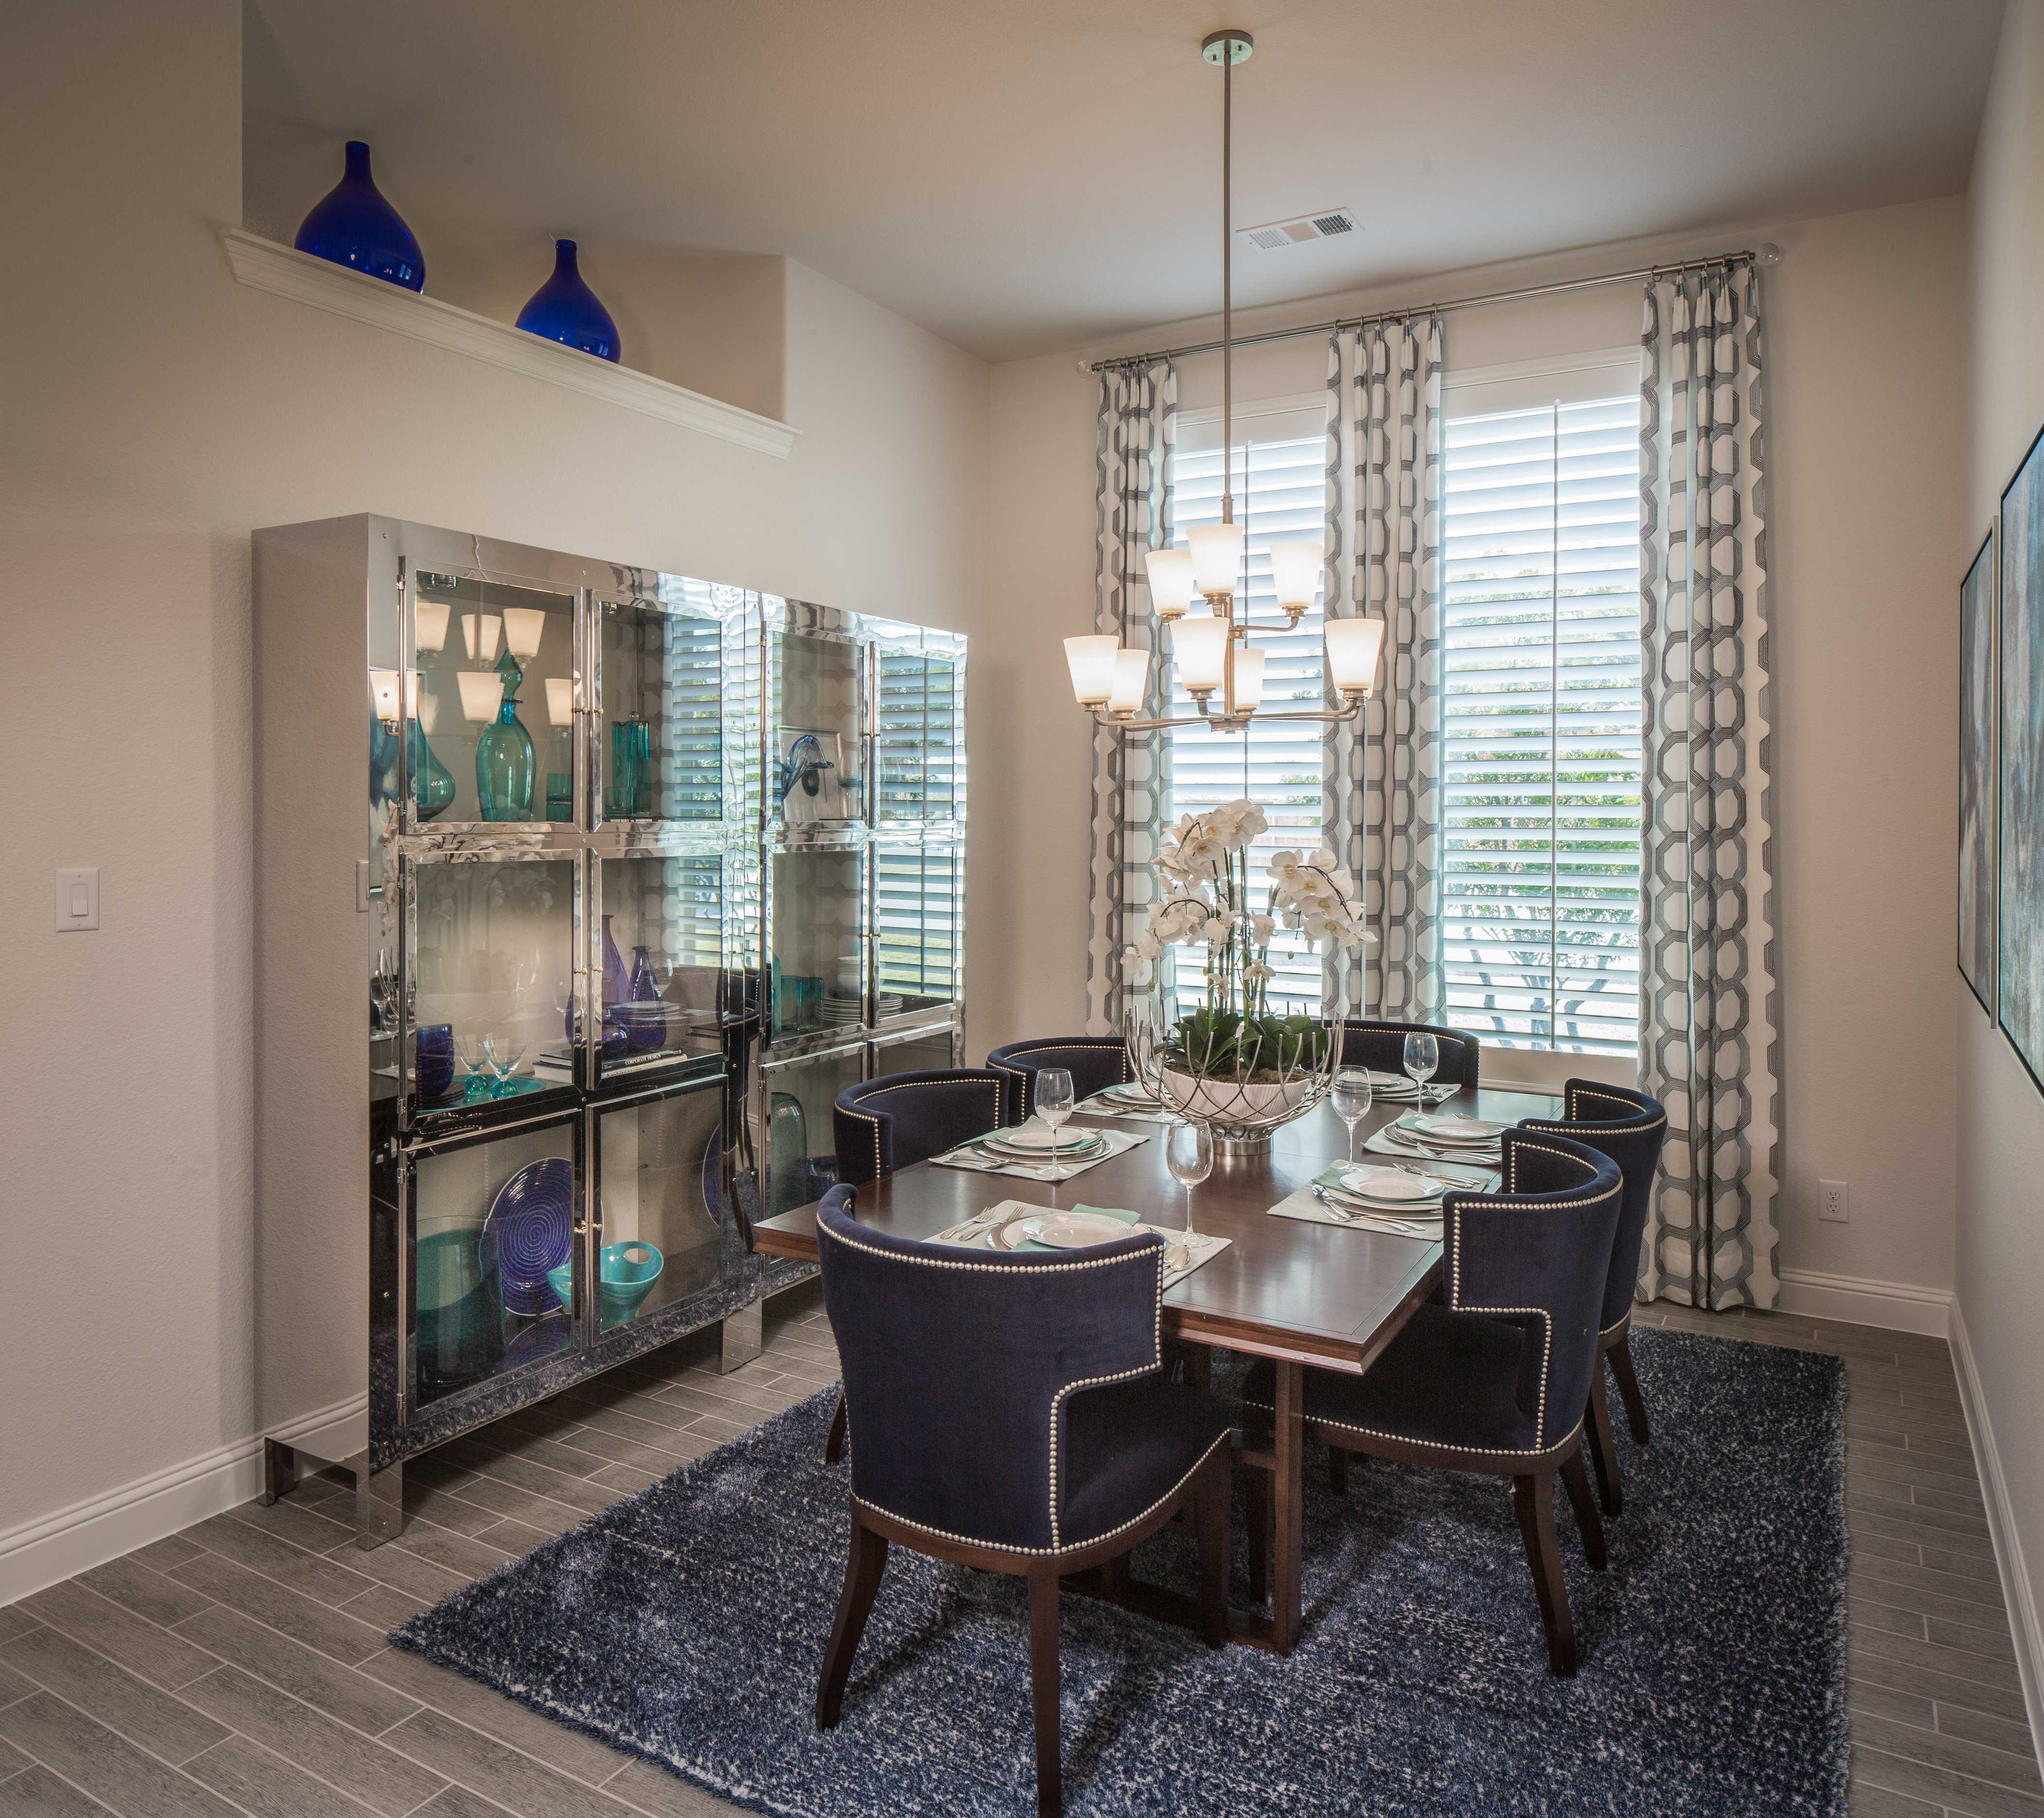 Model Home in Dallas / Fort Worth Texas, Windsong Ranch 60s community